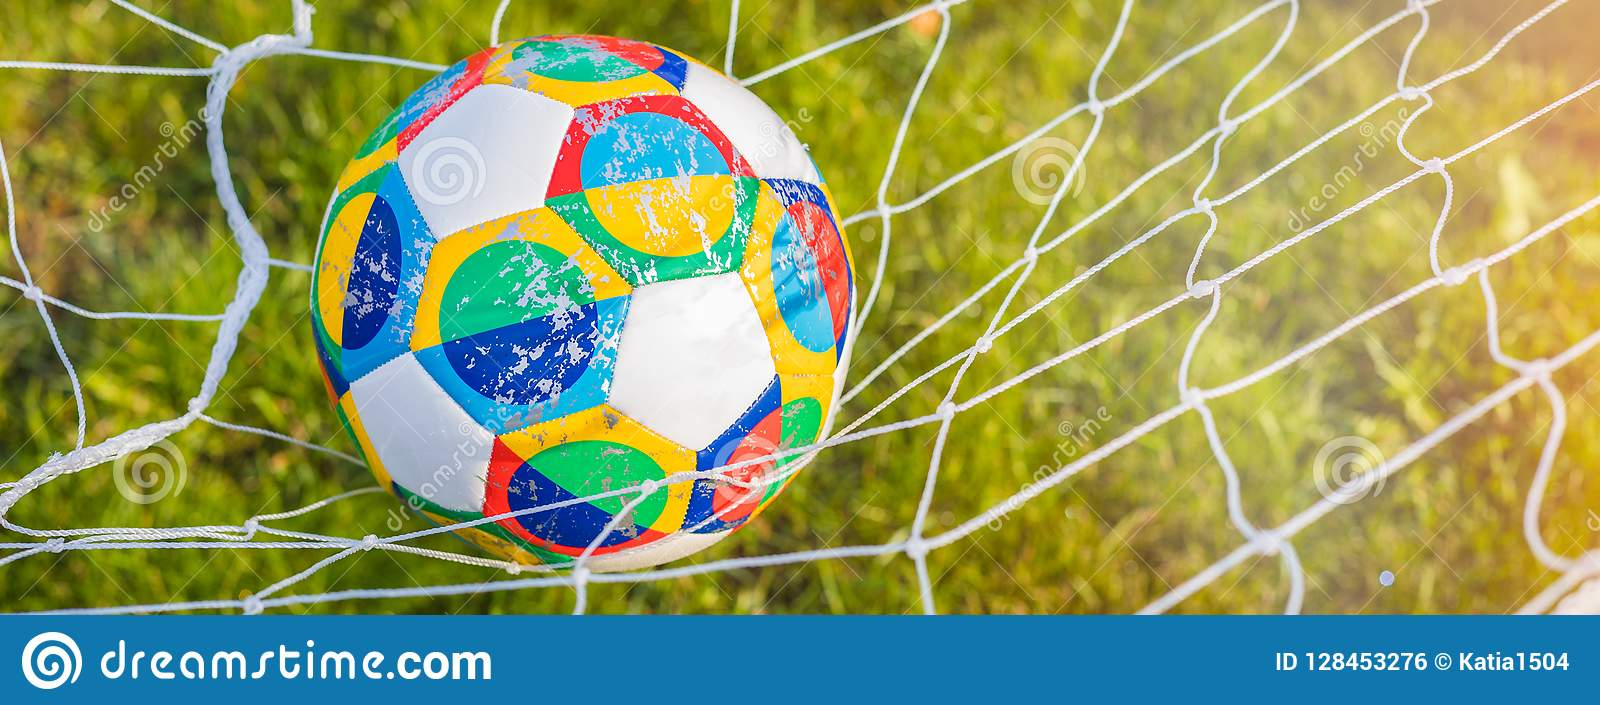 Moscow Russia October 7 2018 Adidas Uefa Nations League Official Match Ball Glider On The Grass Banner Editorial Photo Image Of Equipment Commercial 128453276